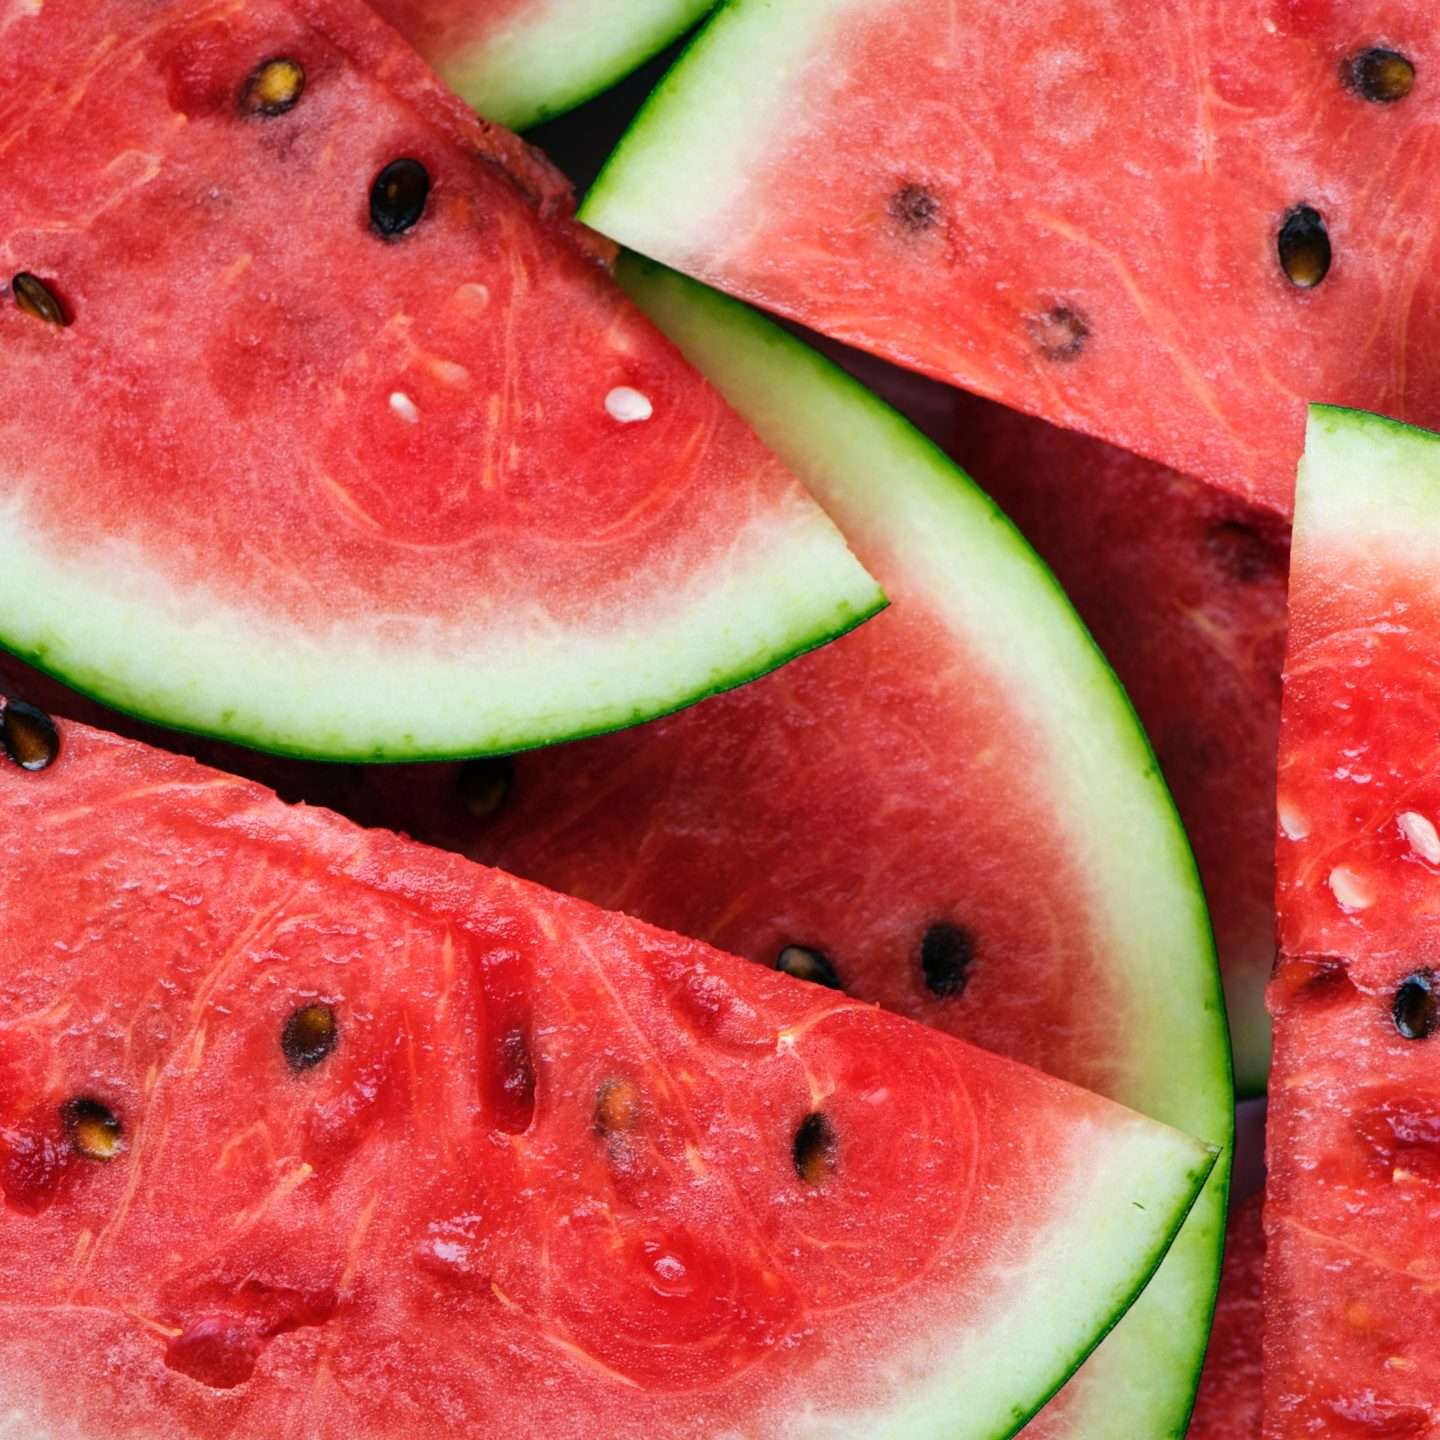 Chinese researchers develop herbicide tolerant watermelon